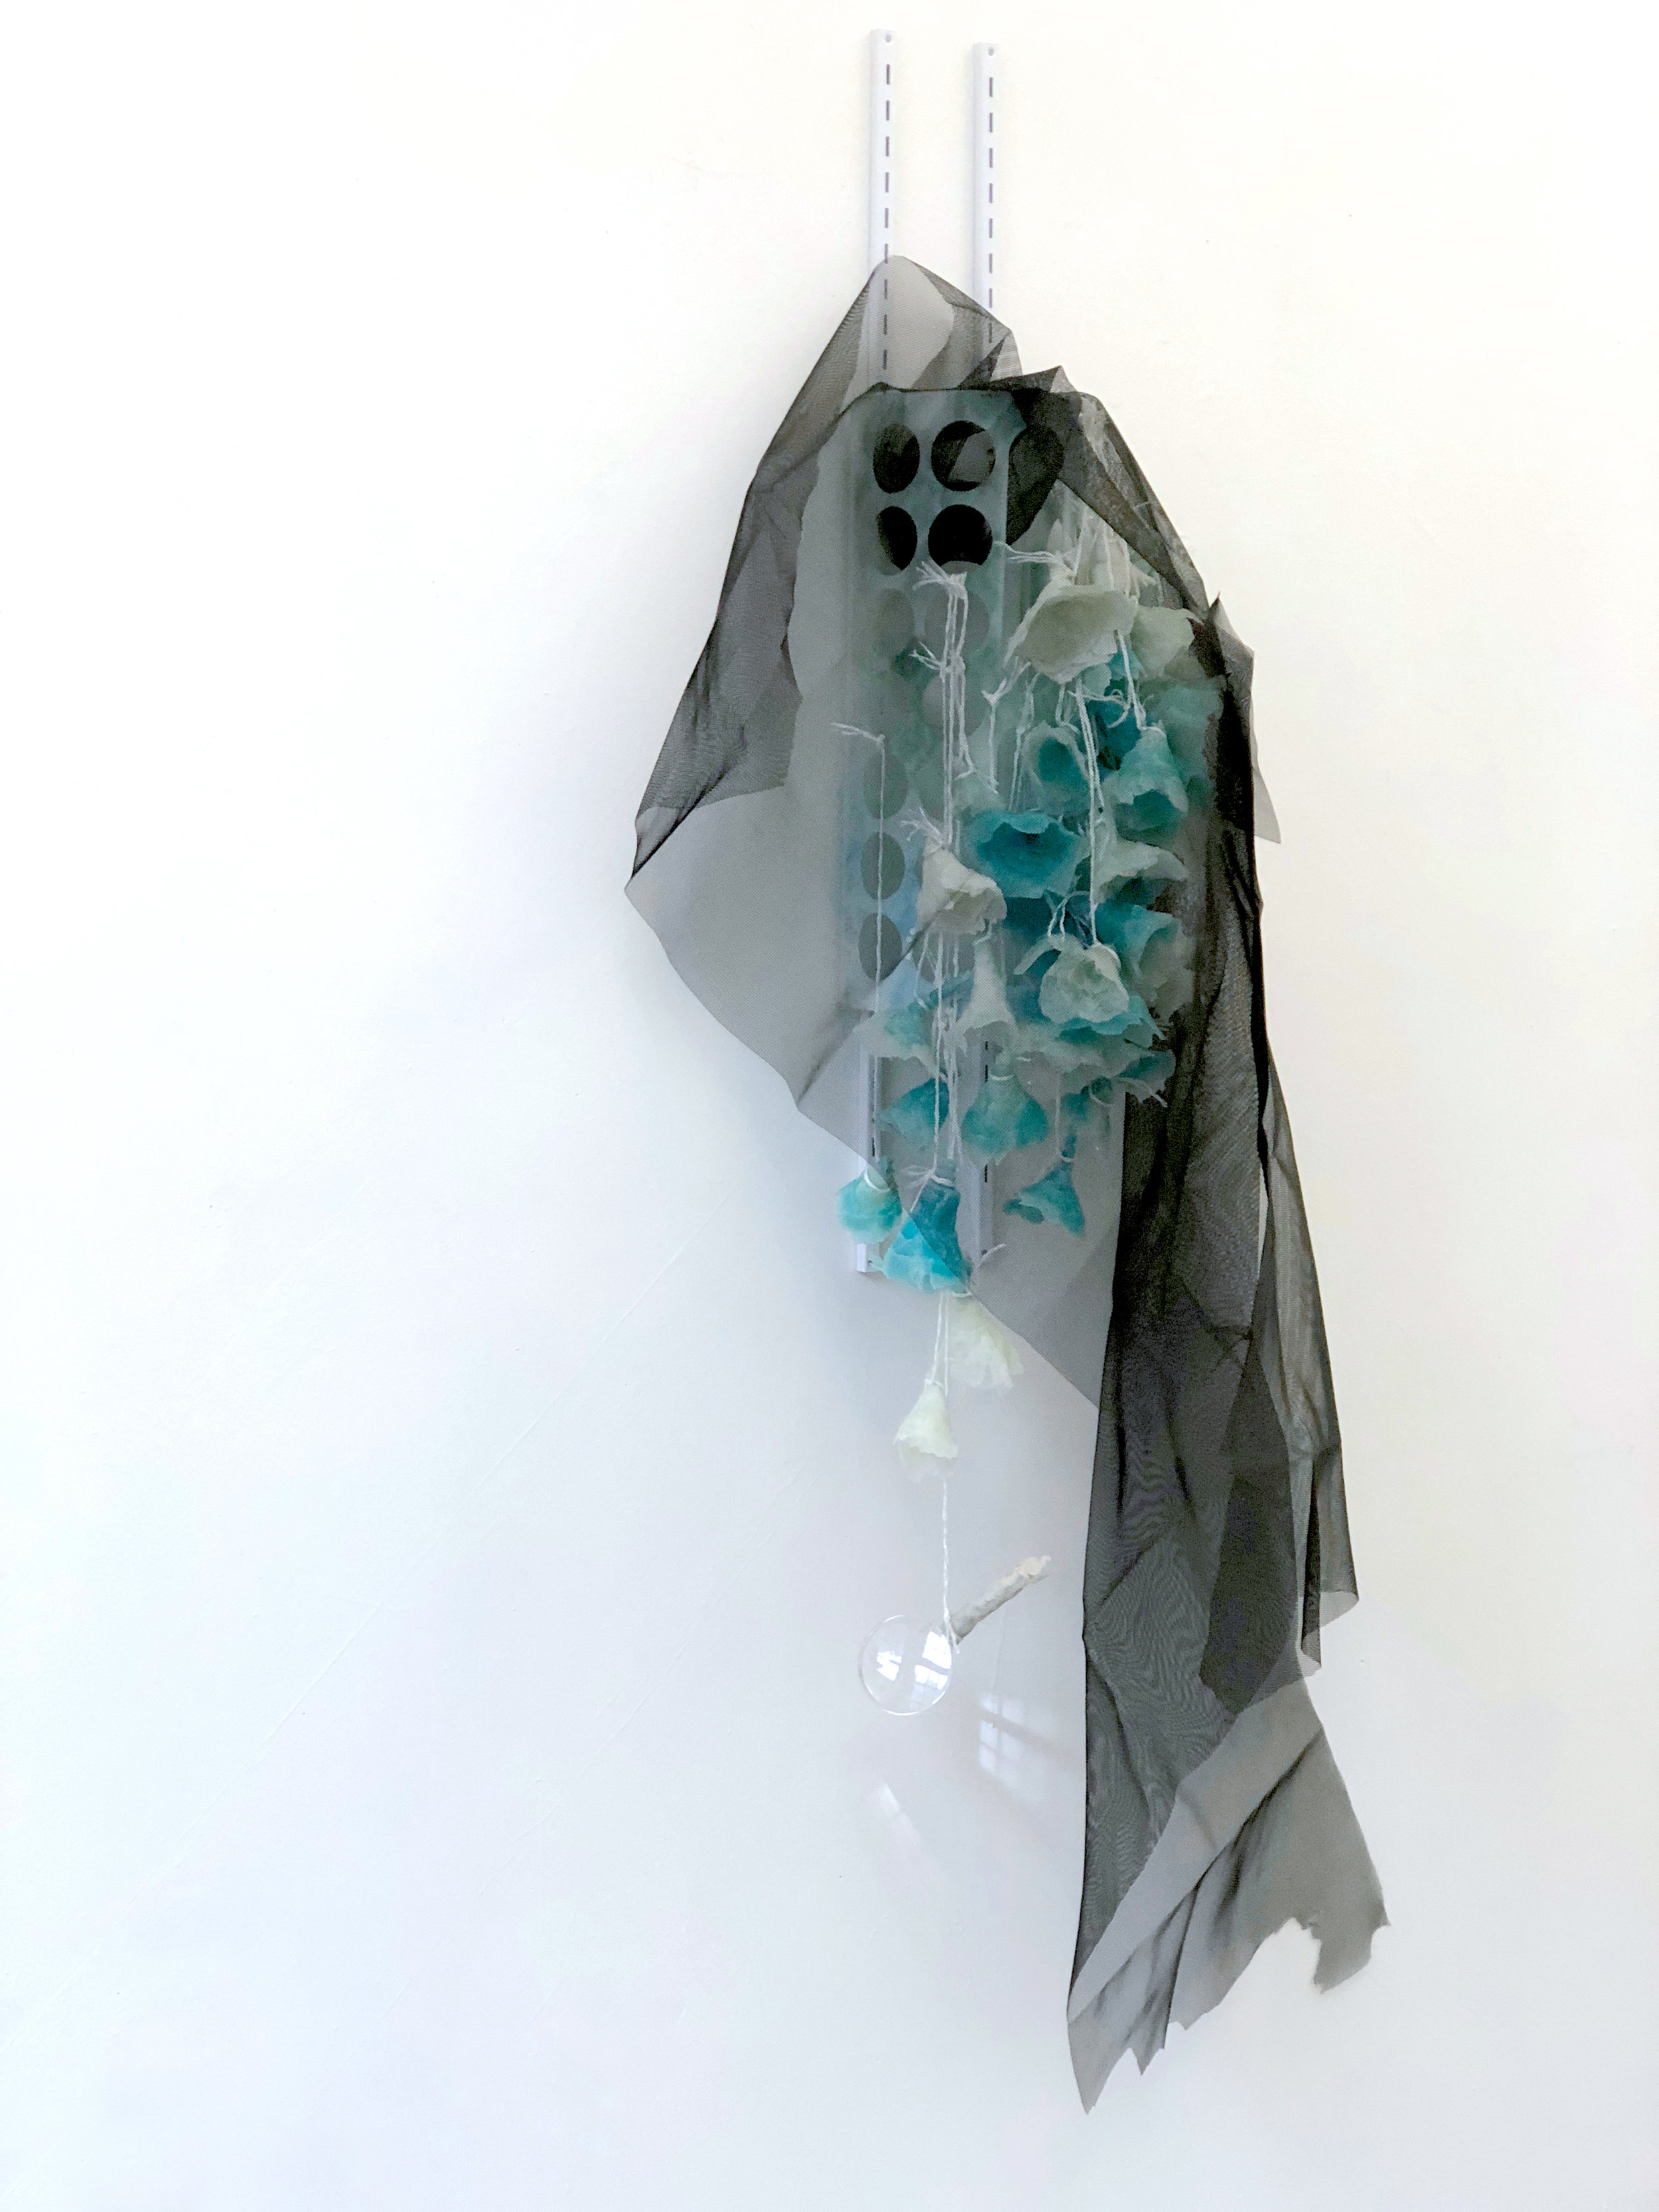 Shy Ghost  , 2018 Sheetrock joint compound gel, plastic bag dispense, wall bracket, polyester string, magnifying glass, charcoal fiberglass screen, lace, epoxy clay, acrylic and spray paint 67x30x17 inches